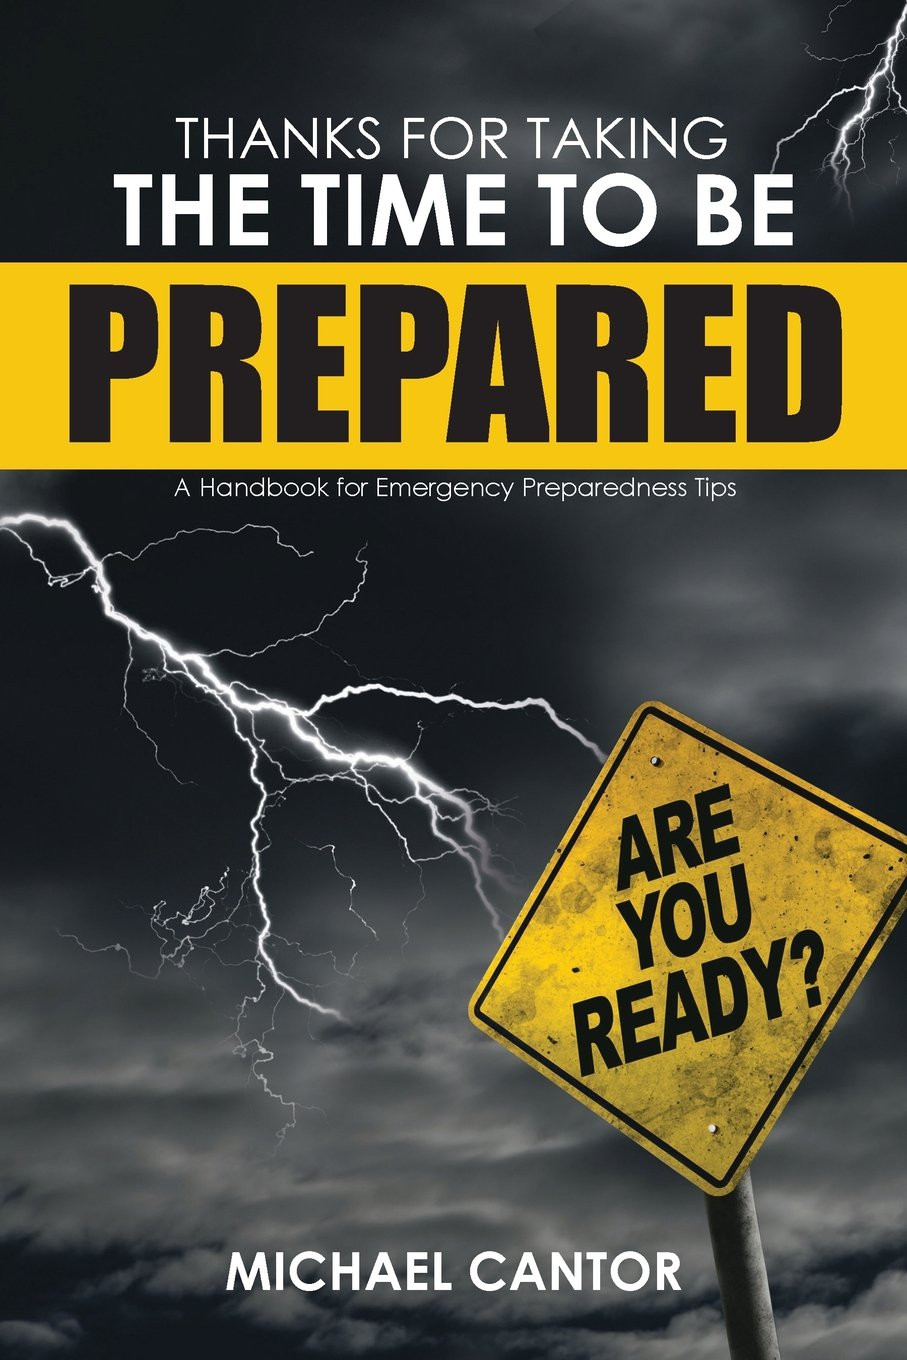 Thanks for Taking the Time to Be Prepared: A Handbook for Emergency Preparedness Tips by Michael Cantor